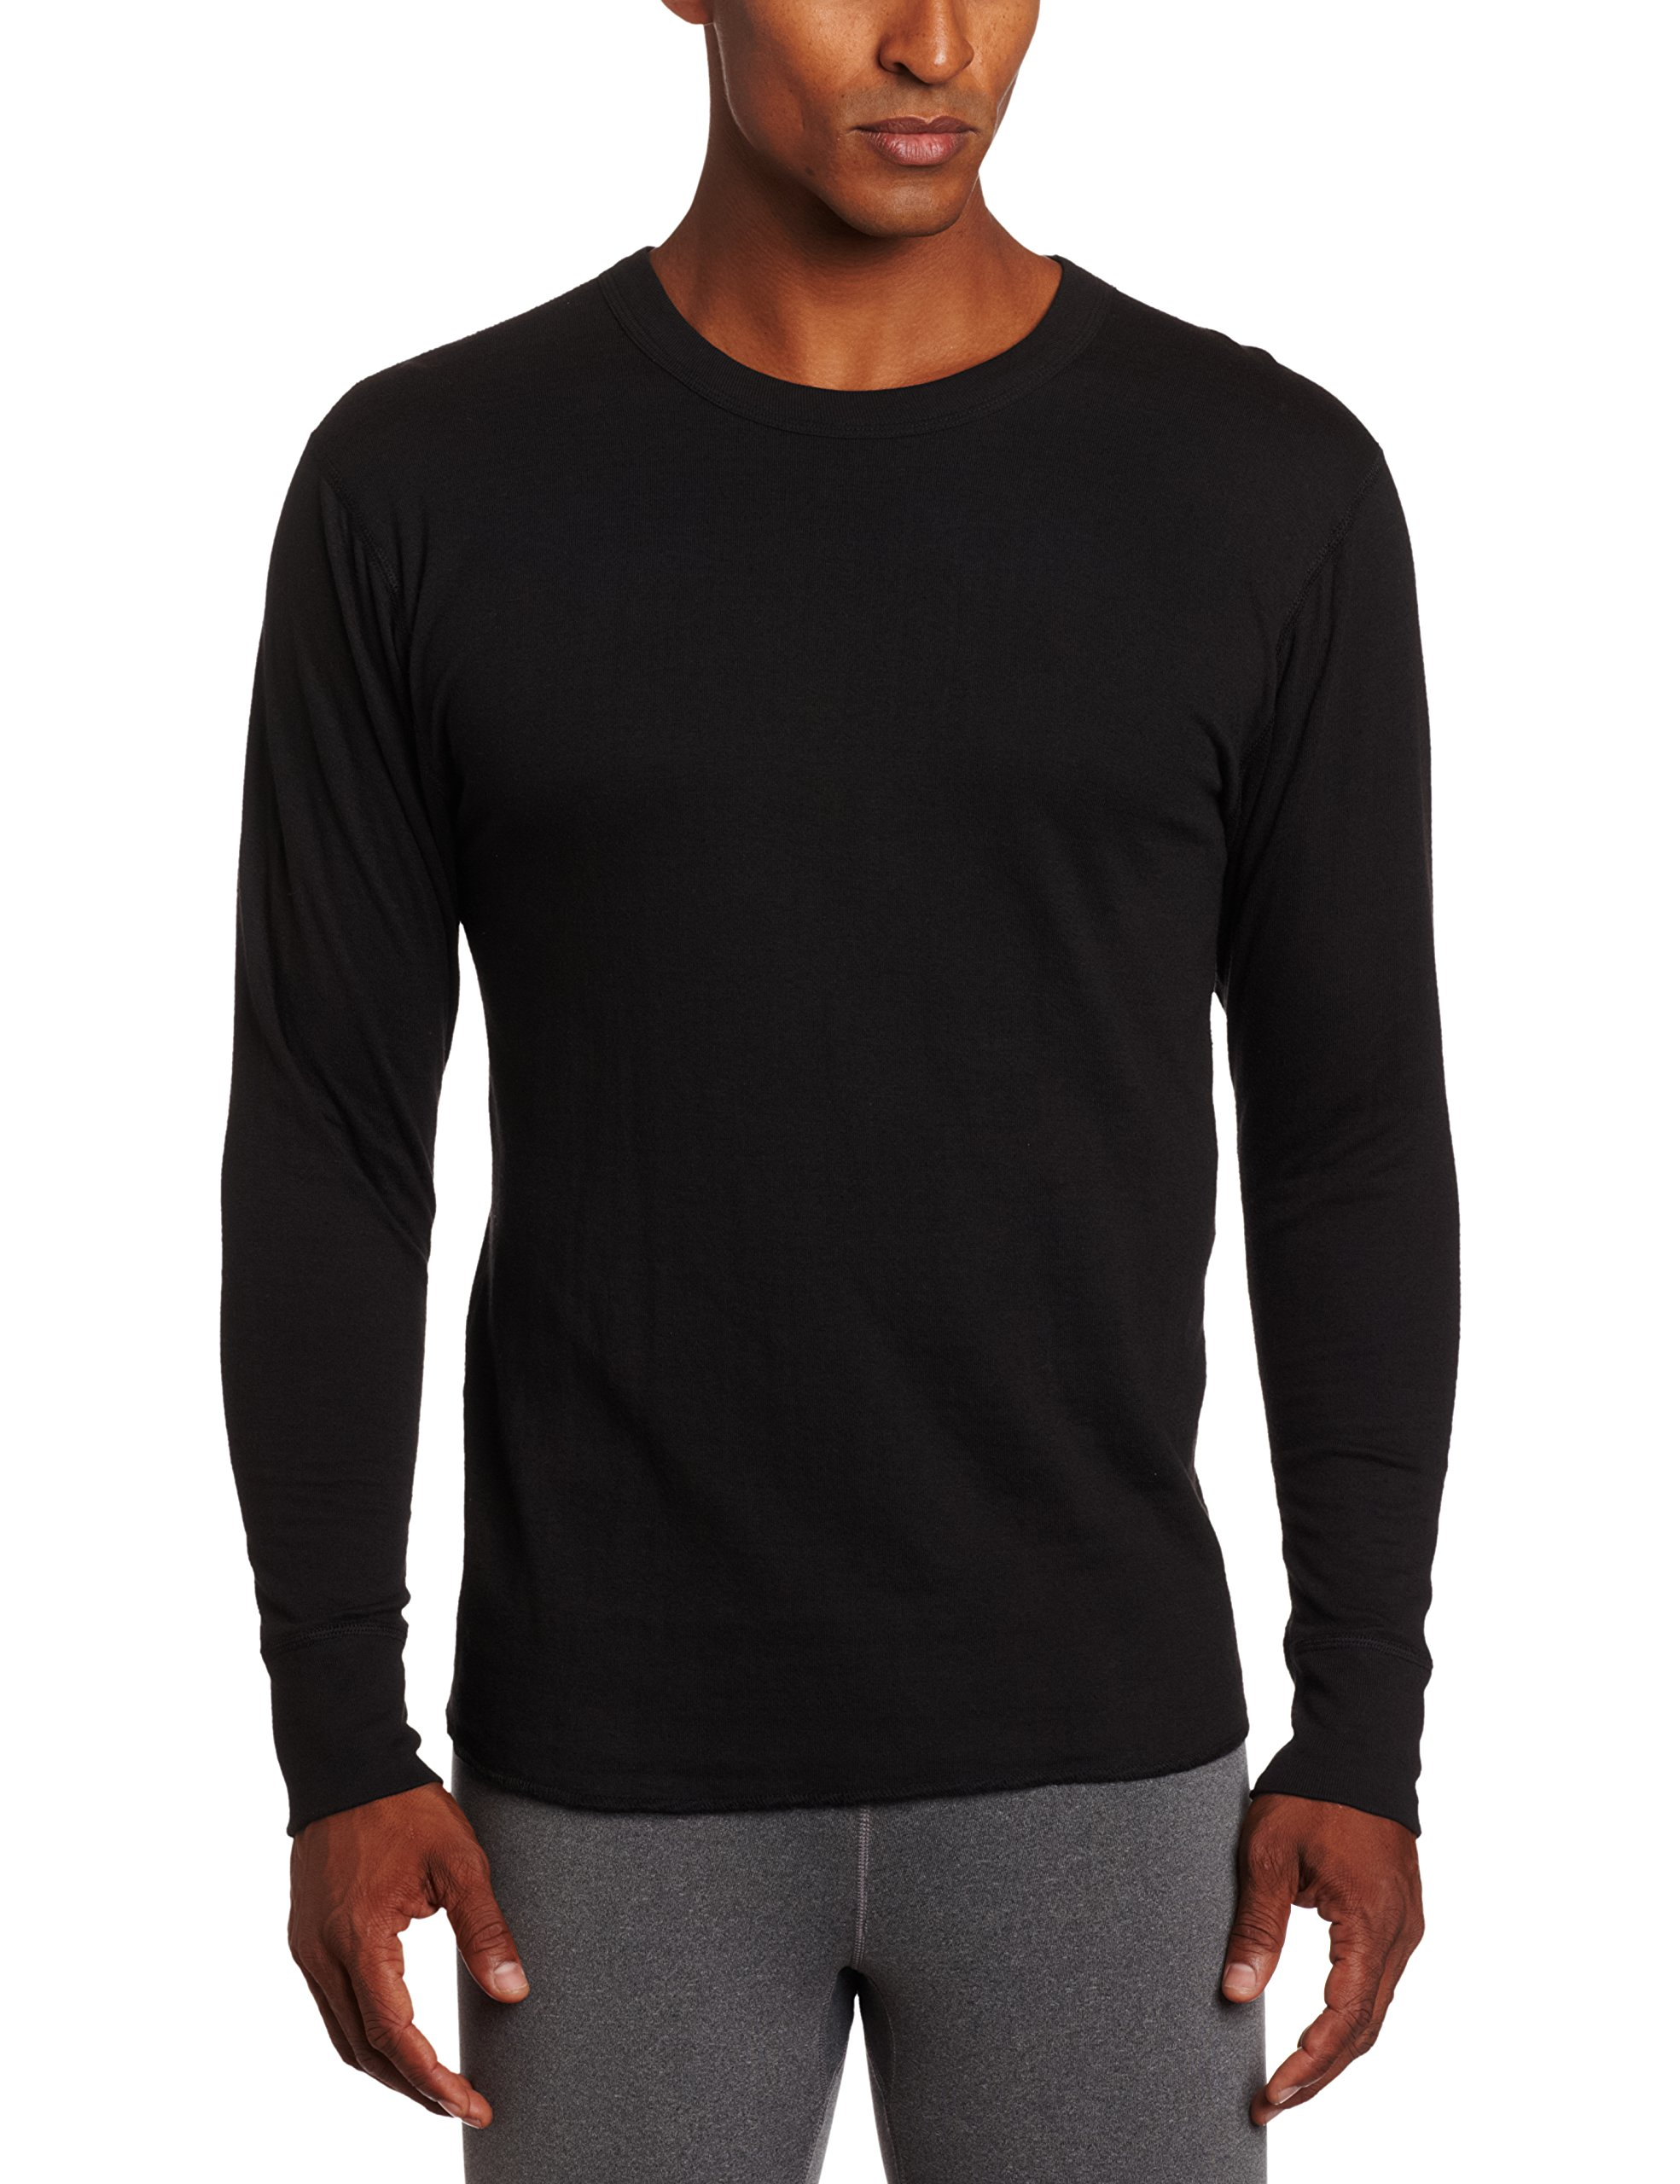 Duofold Men's Mid-Weight Wicking Shirt, Black, XX-Large by Duofold